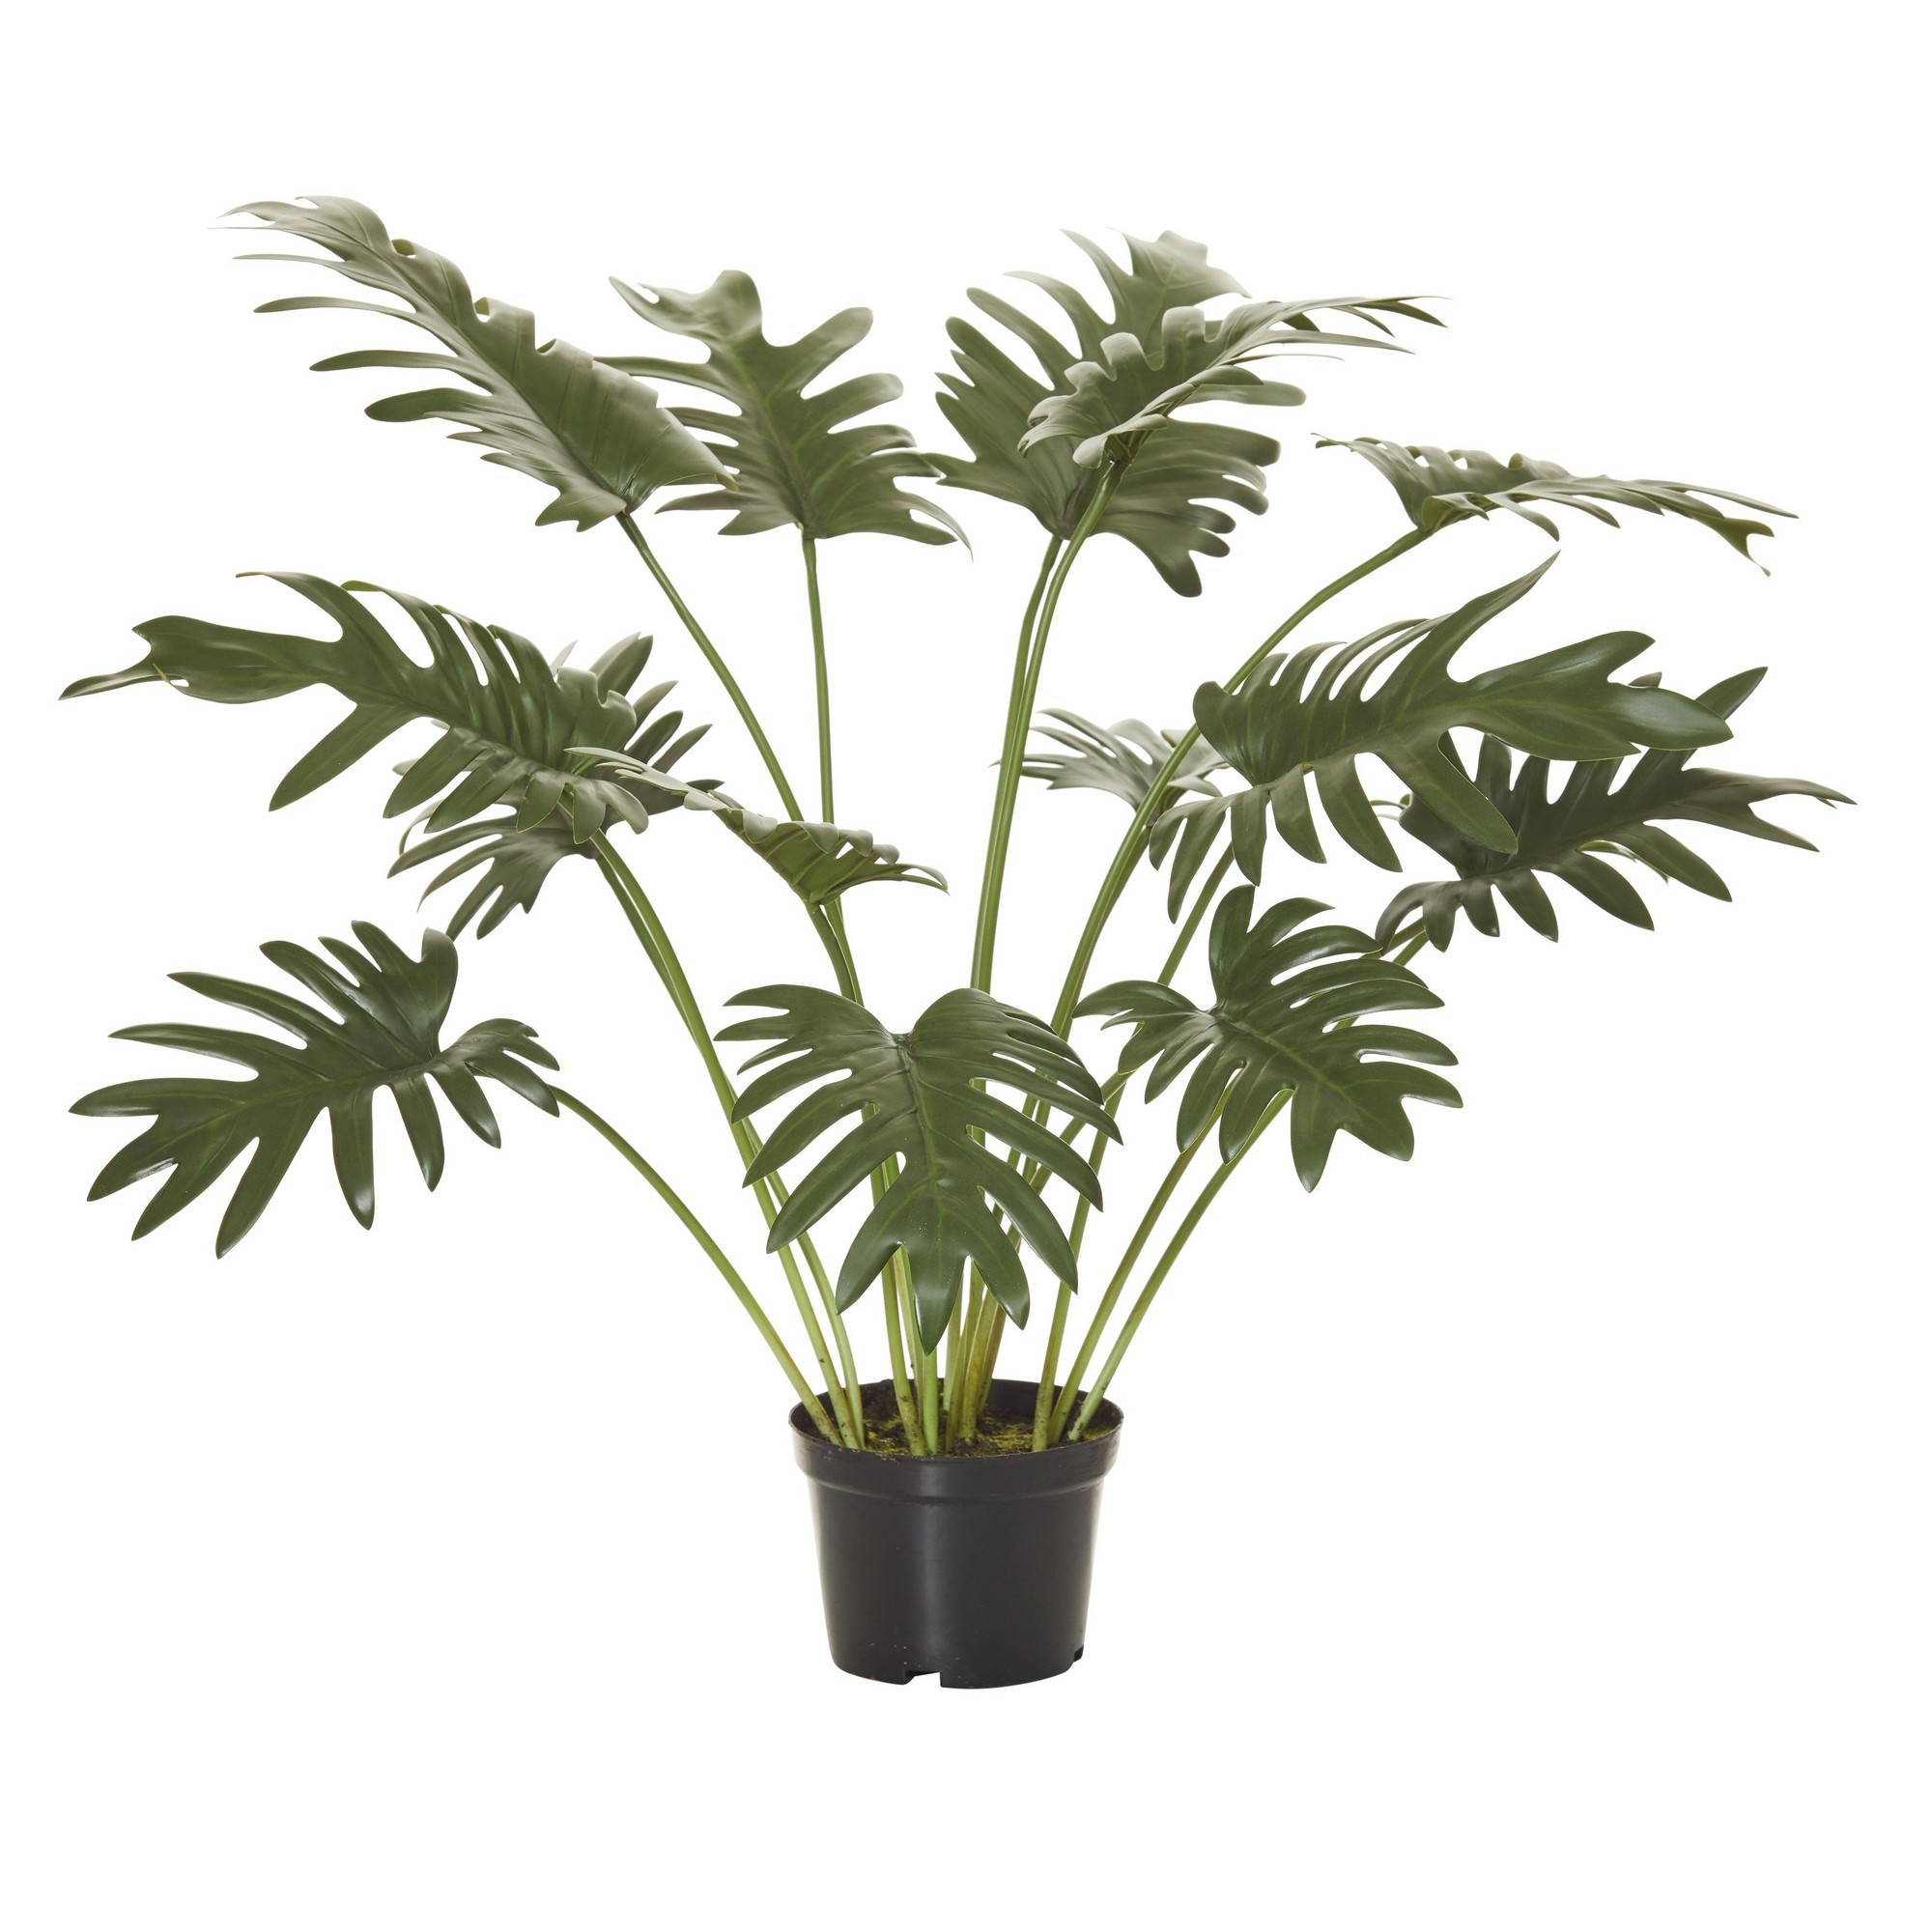 Potted Artificial Monstera Deliciosa Plant, 58cm